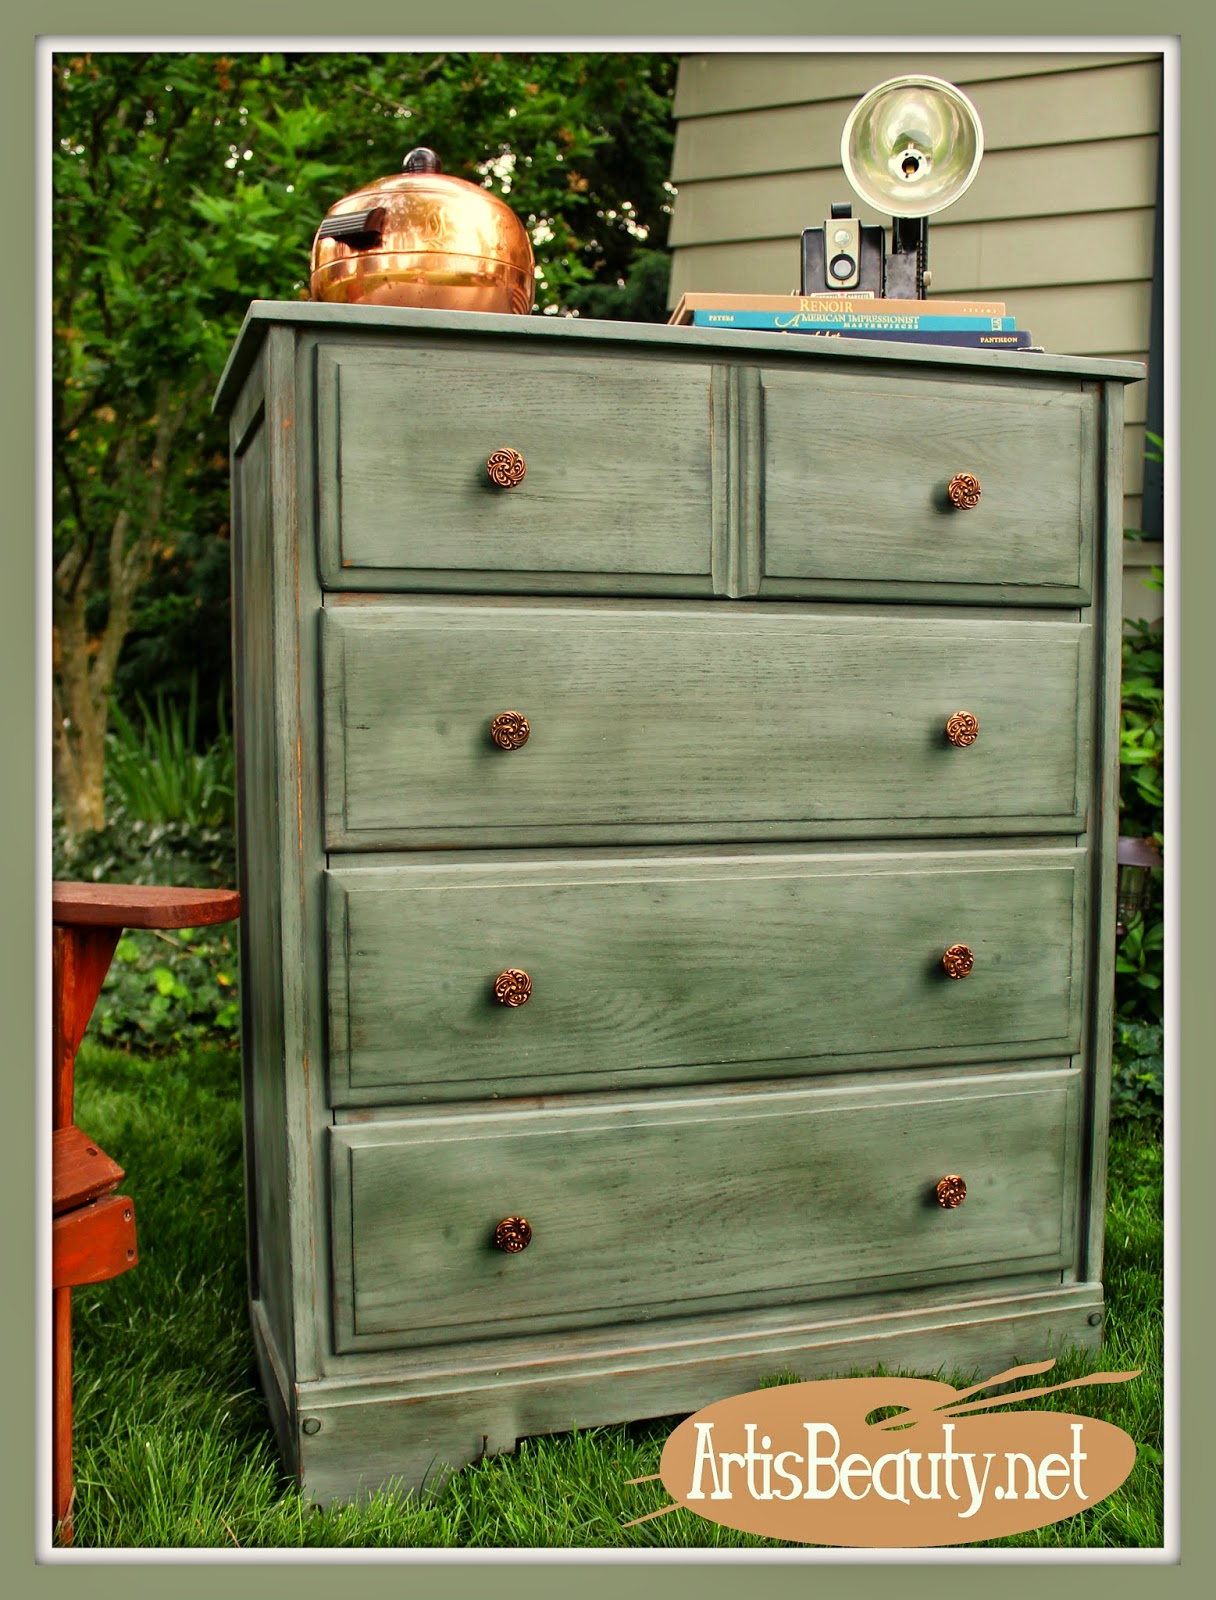 custom-shark-fin-gun-metal-green-dresser-artisbeauty.net